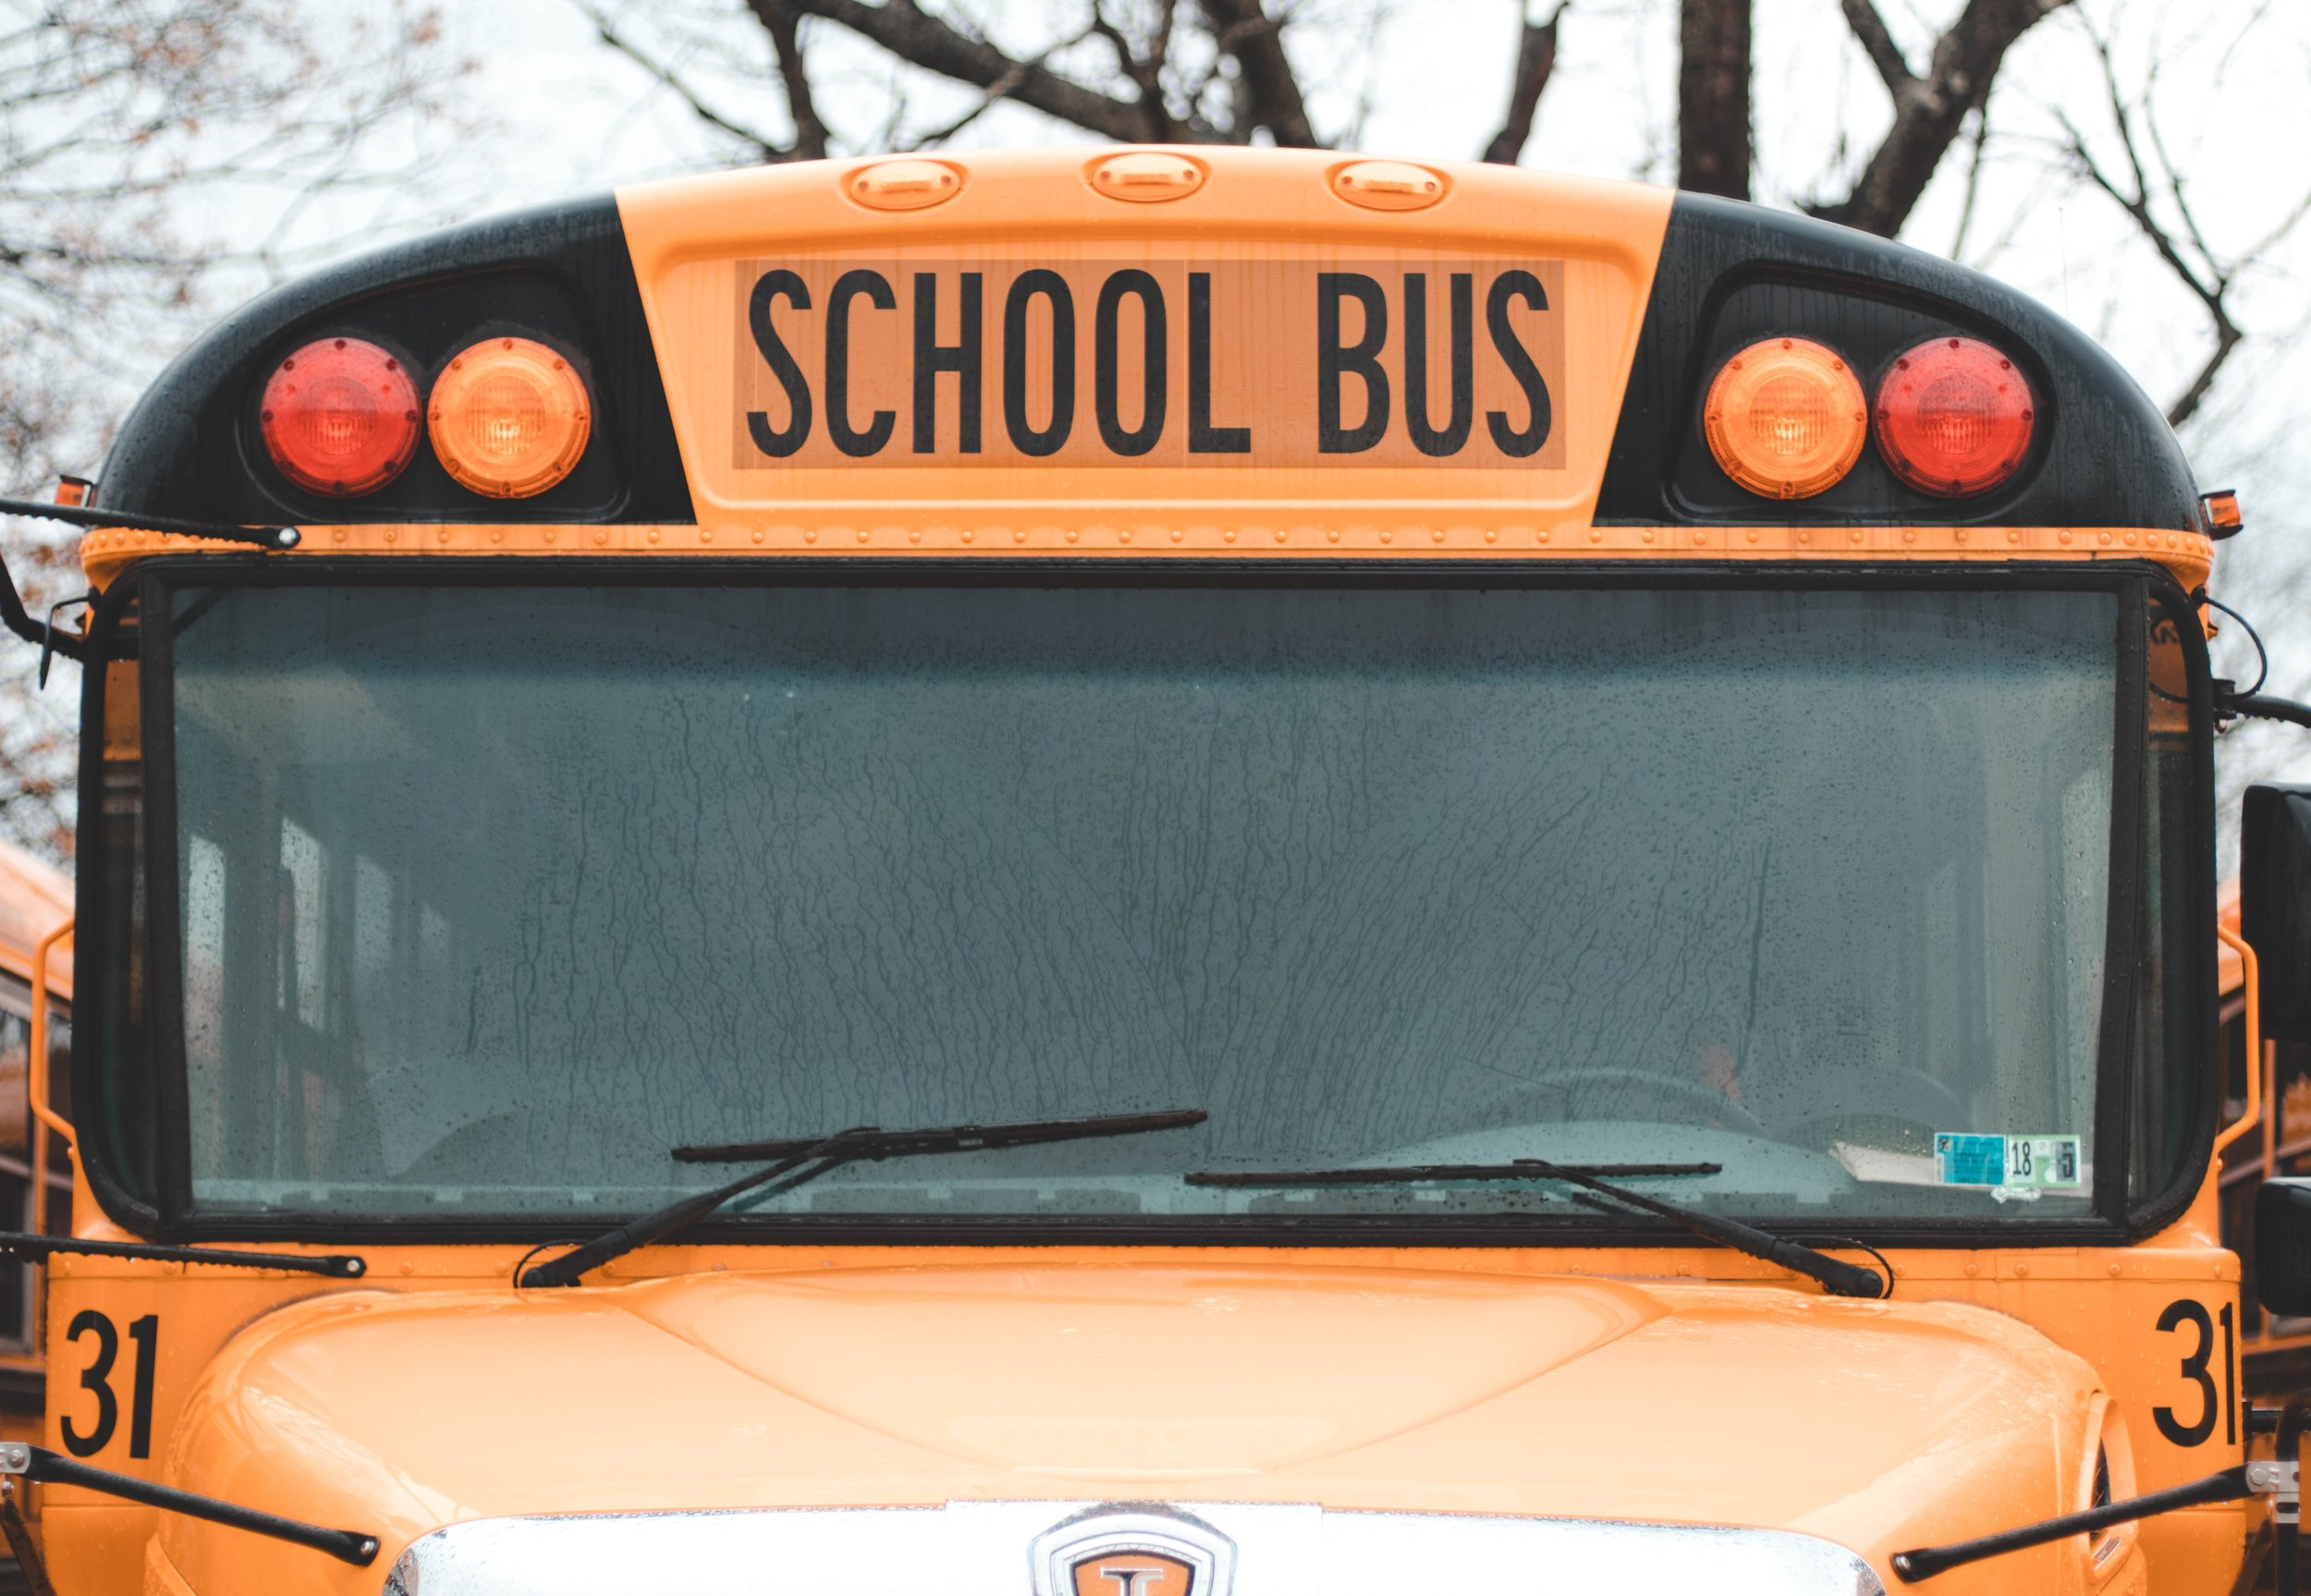 The City Council approved legislation to install GPS trackers on all school buses. Photo by Austin Pacheco/Unsplash